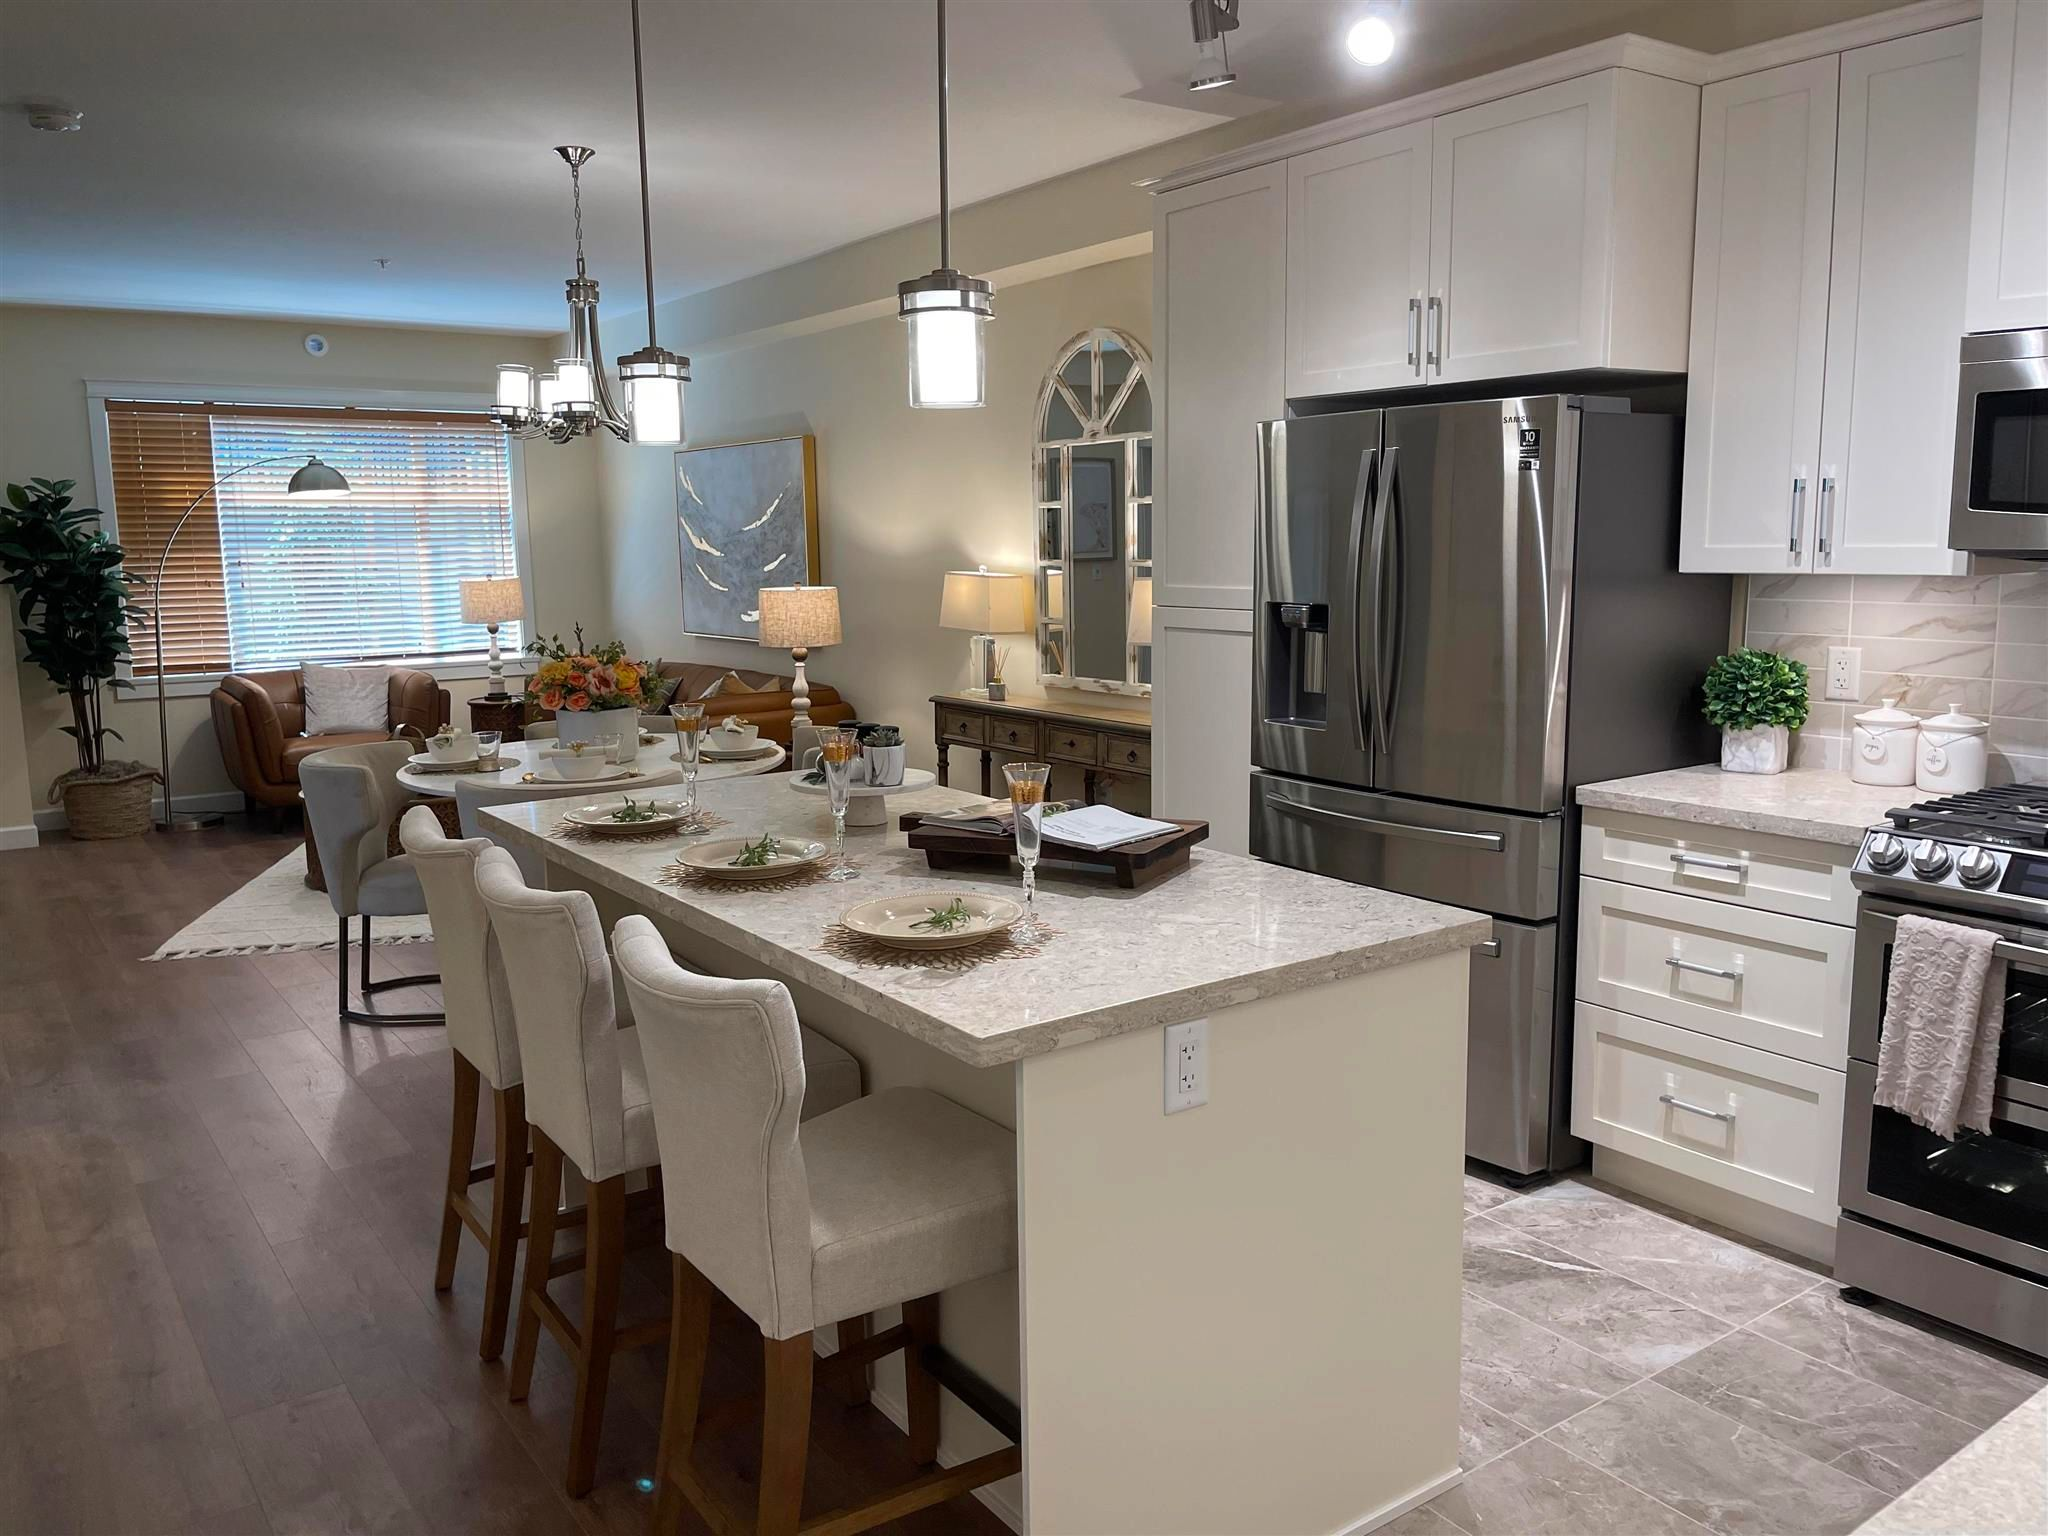 """Main Photo: 404 8561 203A Street in Langley: Langley City Condo for sale in """"YORKSON PARK CENTRAL"""" : MLS®# R2616599"""